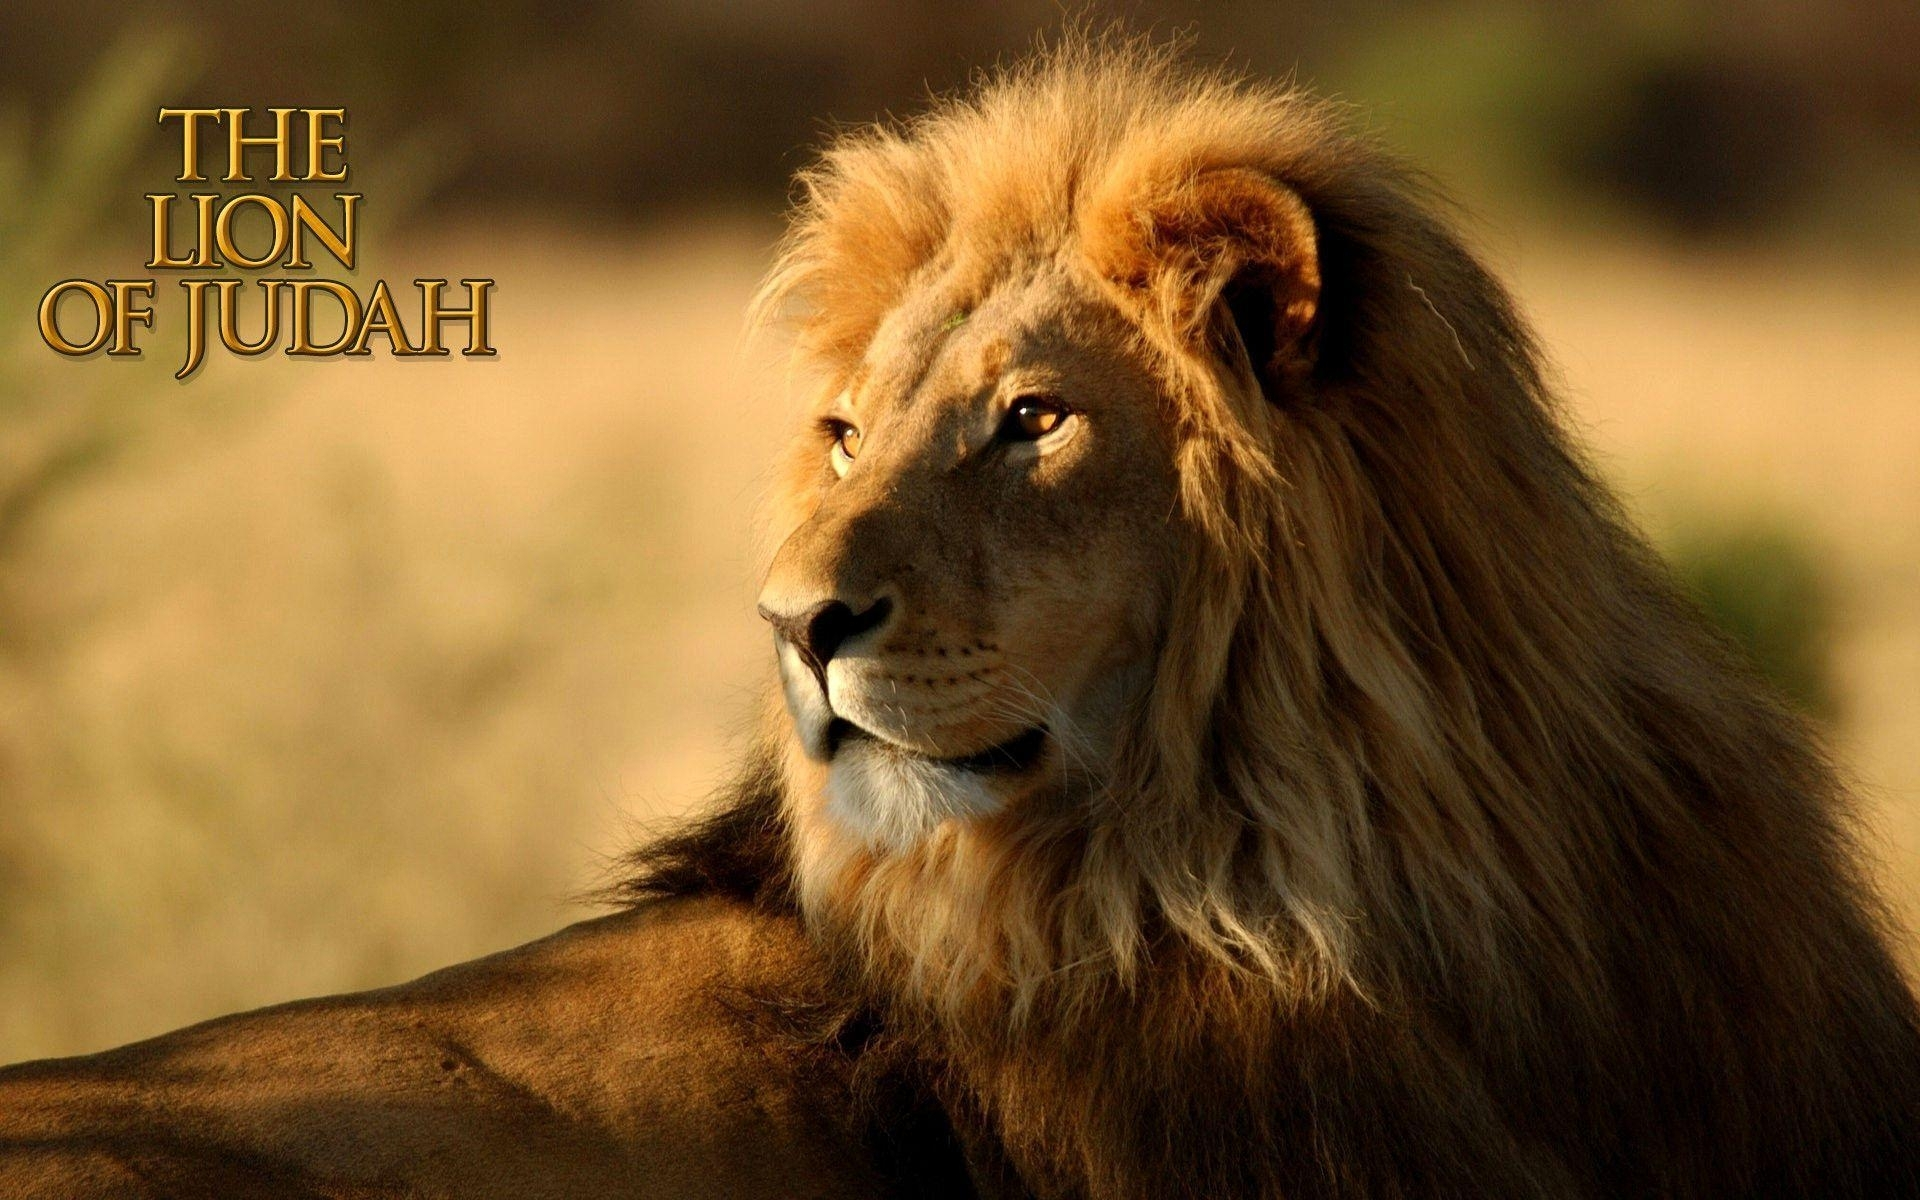 10 Latest Lion Of Judah Images FULL HD 1080p For PC Background